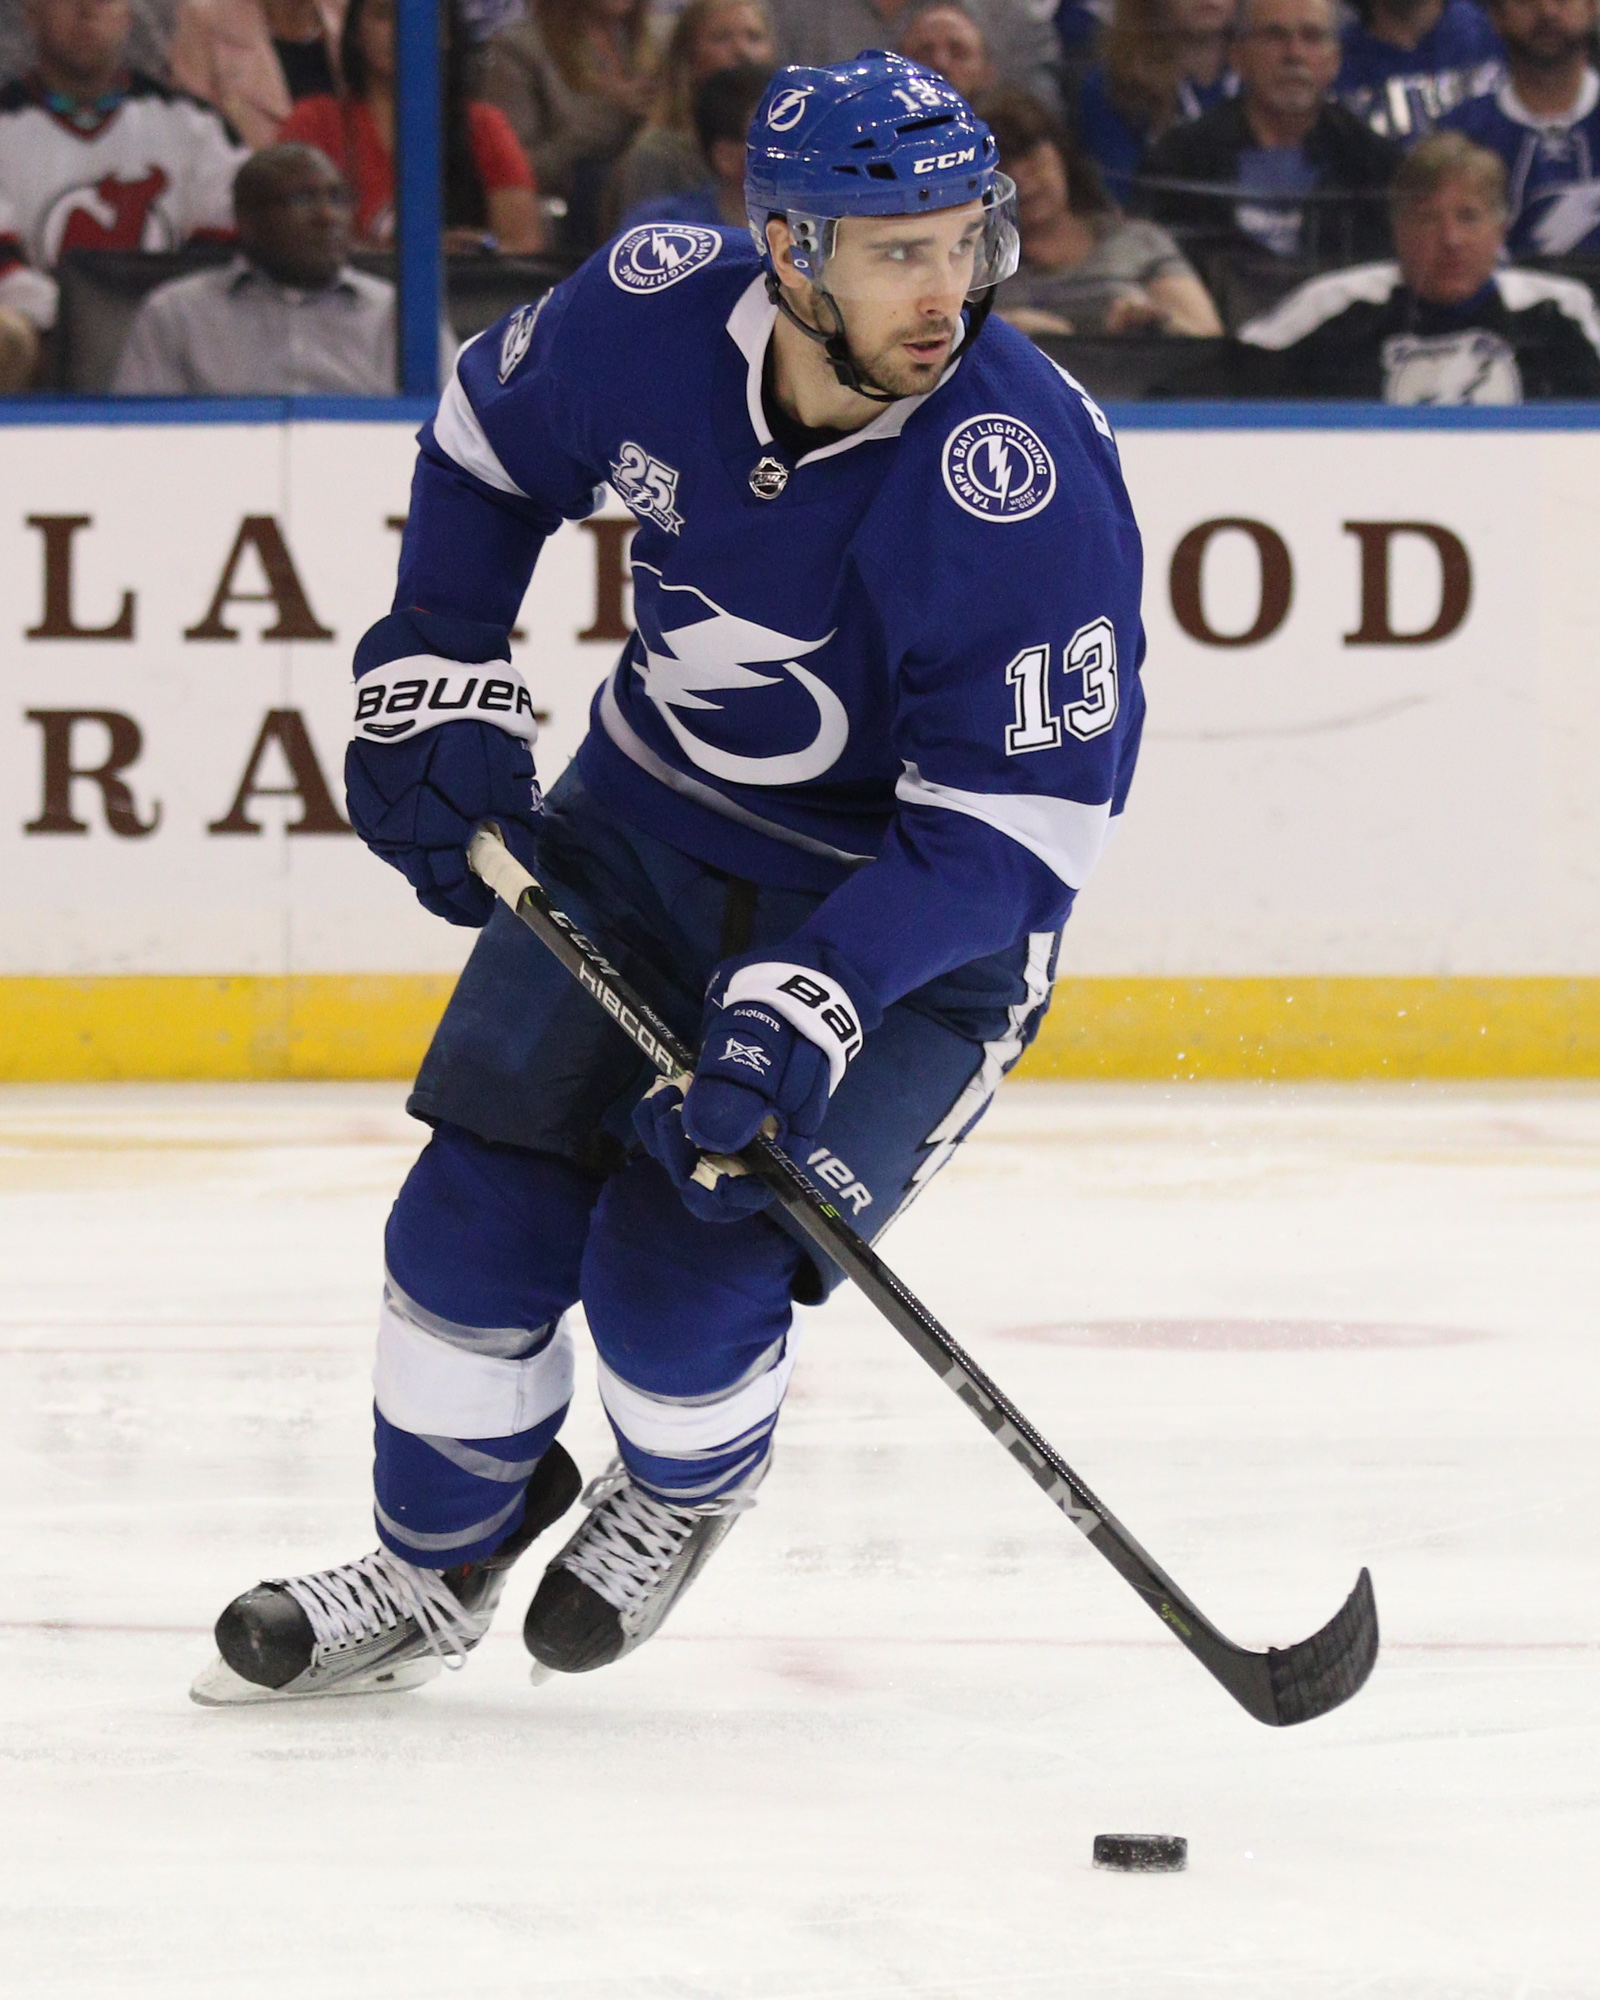 Paquette moves up the ice for the Bolts./ANDREW J. KRAMER